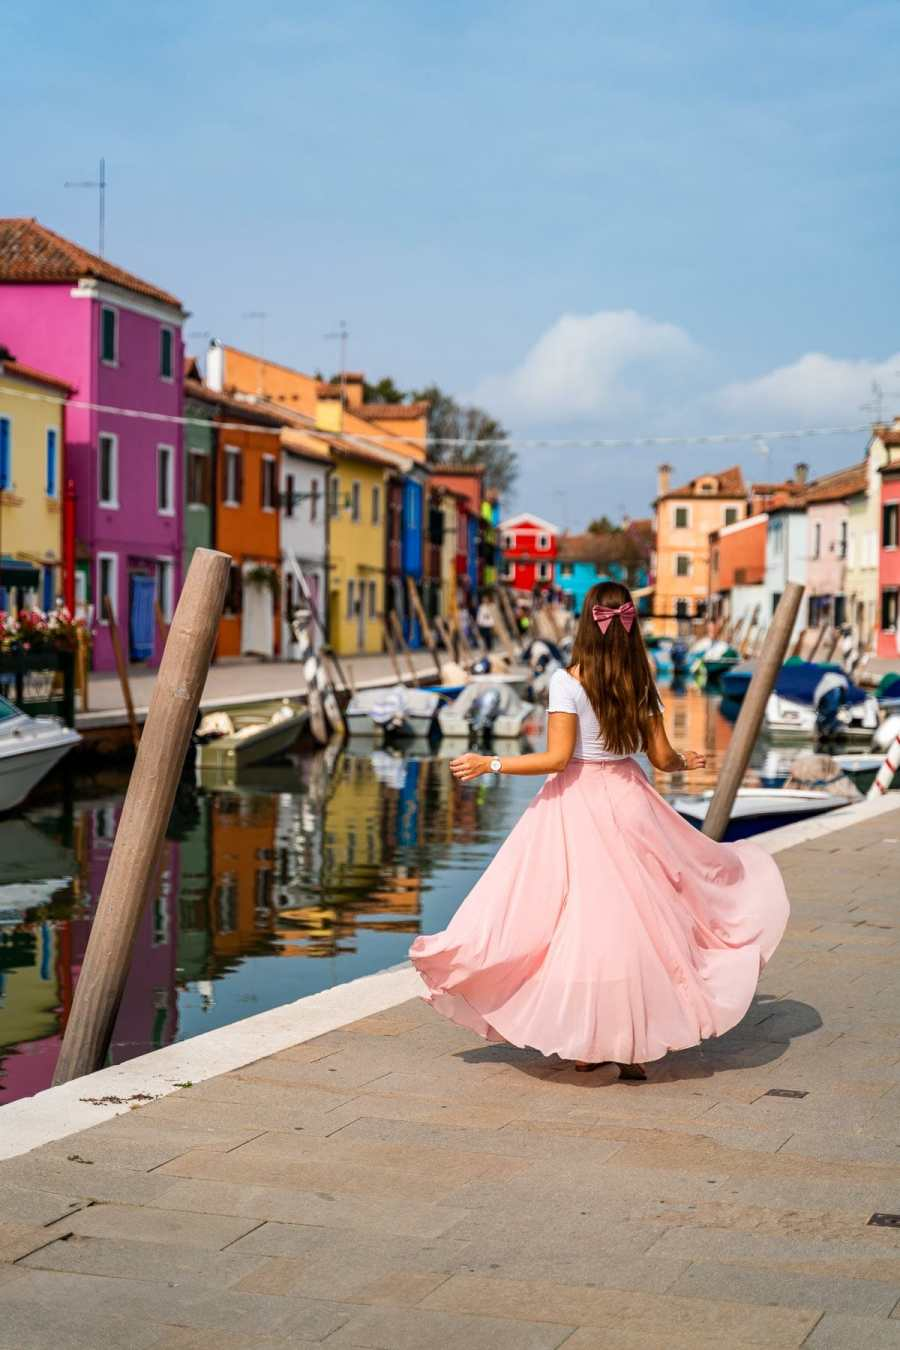 Girl in a pink skirt twirling in front of the colorful houses in Burano